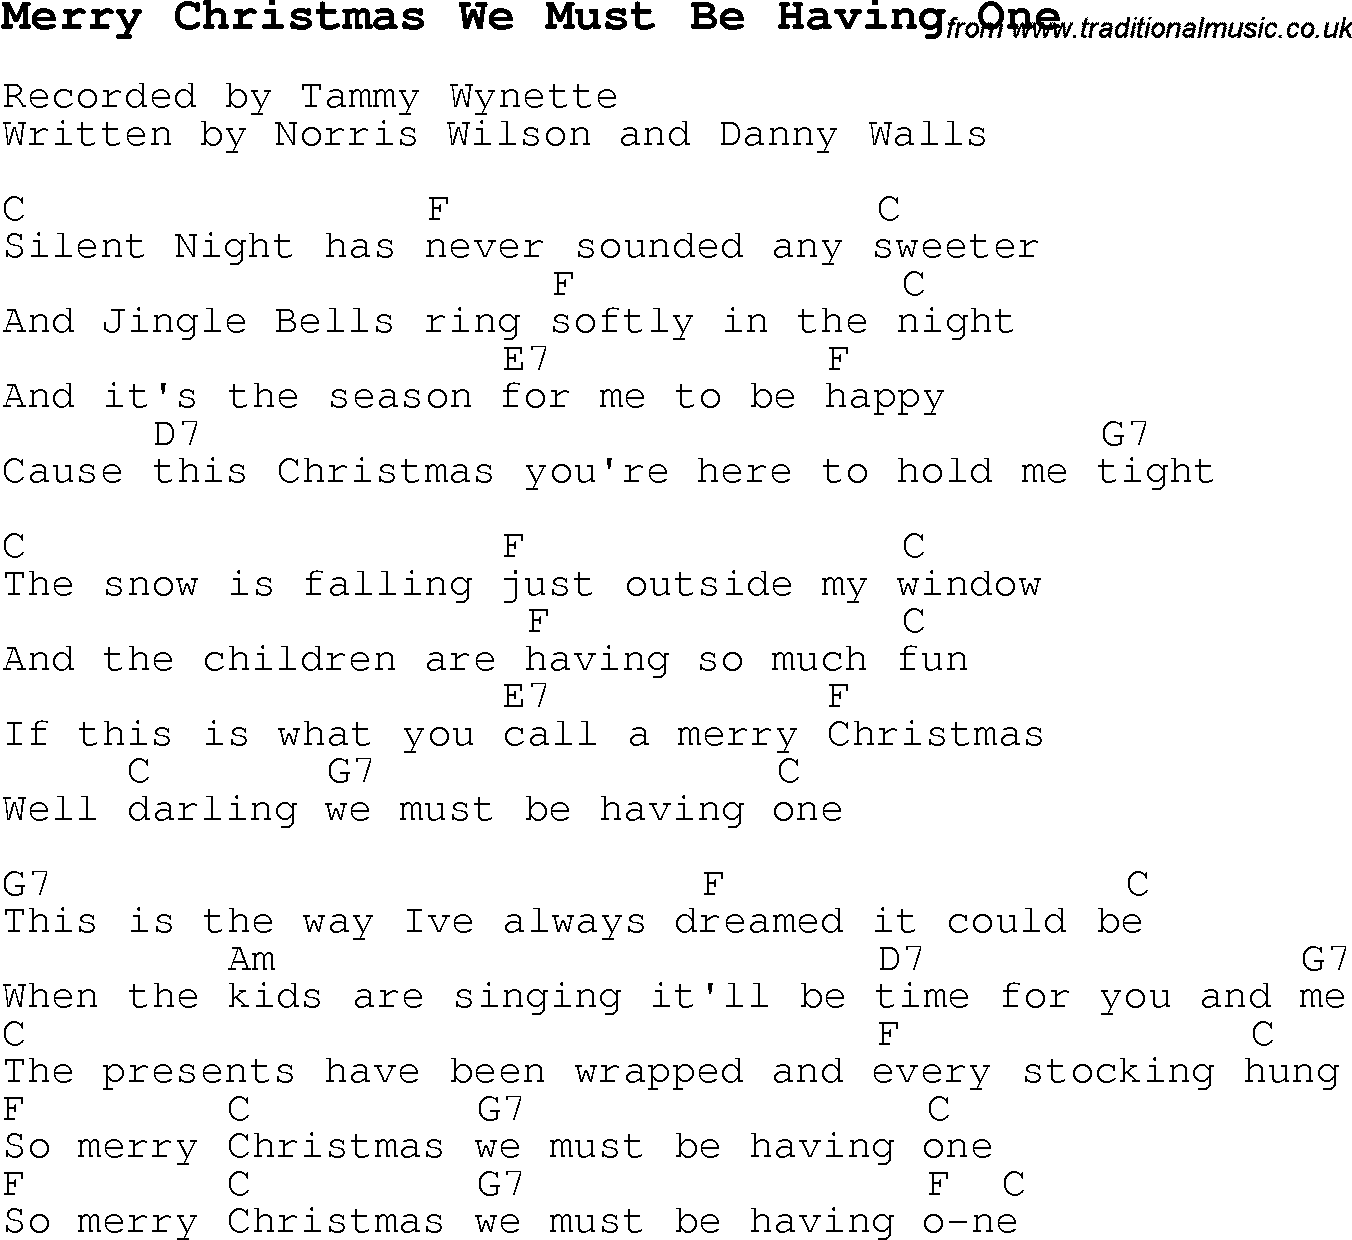 Christmas Carol/Song lyrics with chords for Merry Christmas We Must ...